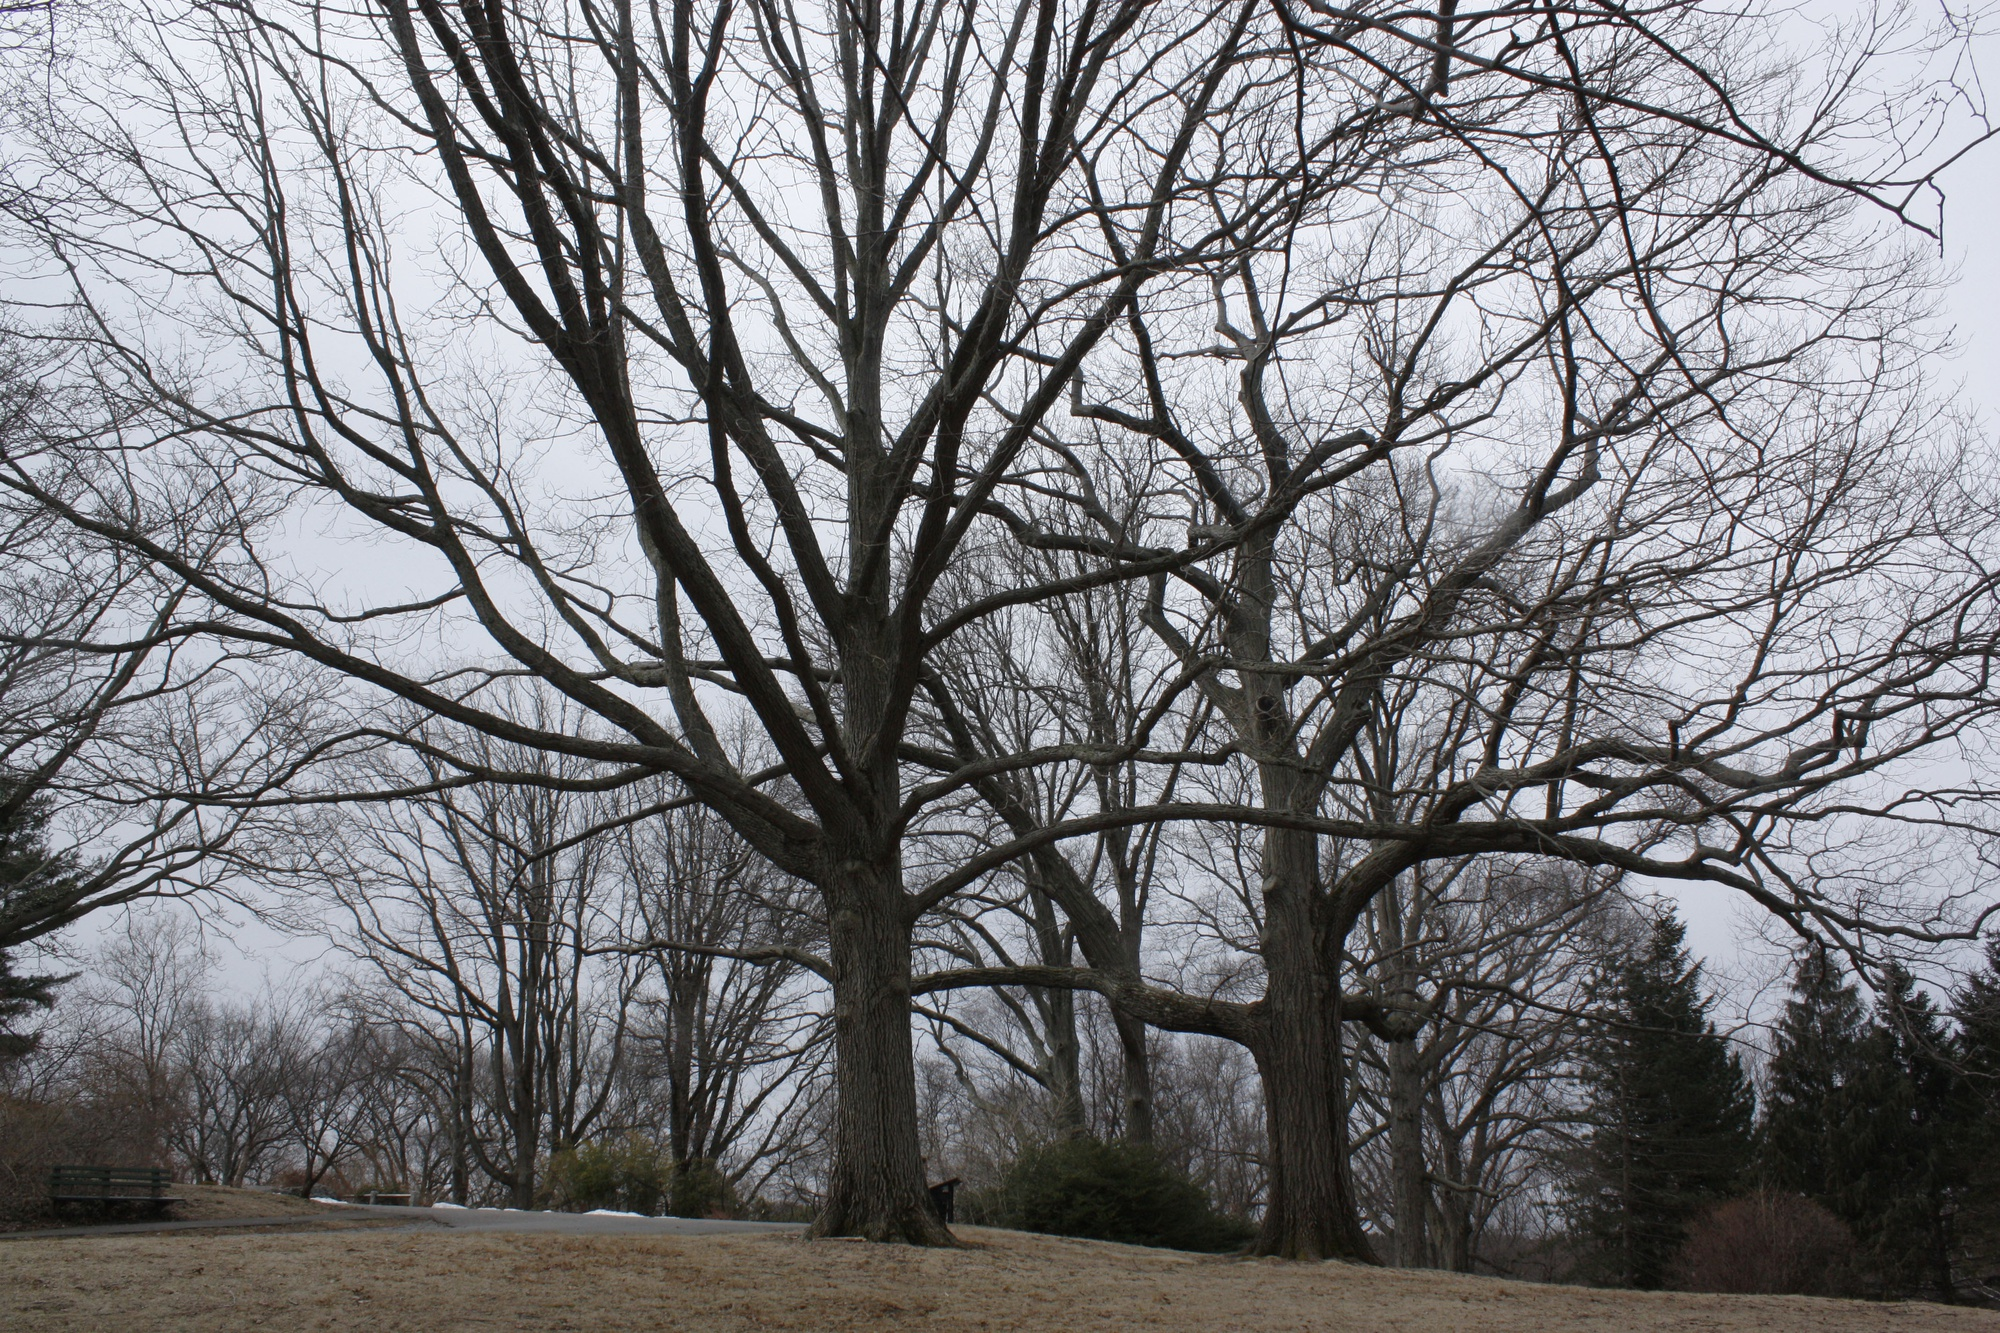 Schuett Oaks stand at the top of Bussey Hill at the Arnold Arboretum in Boston.